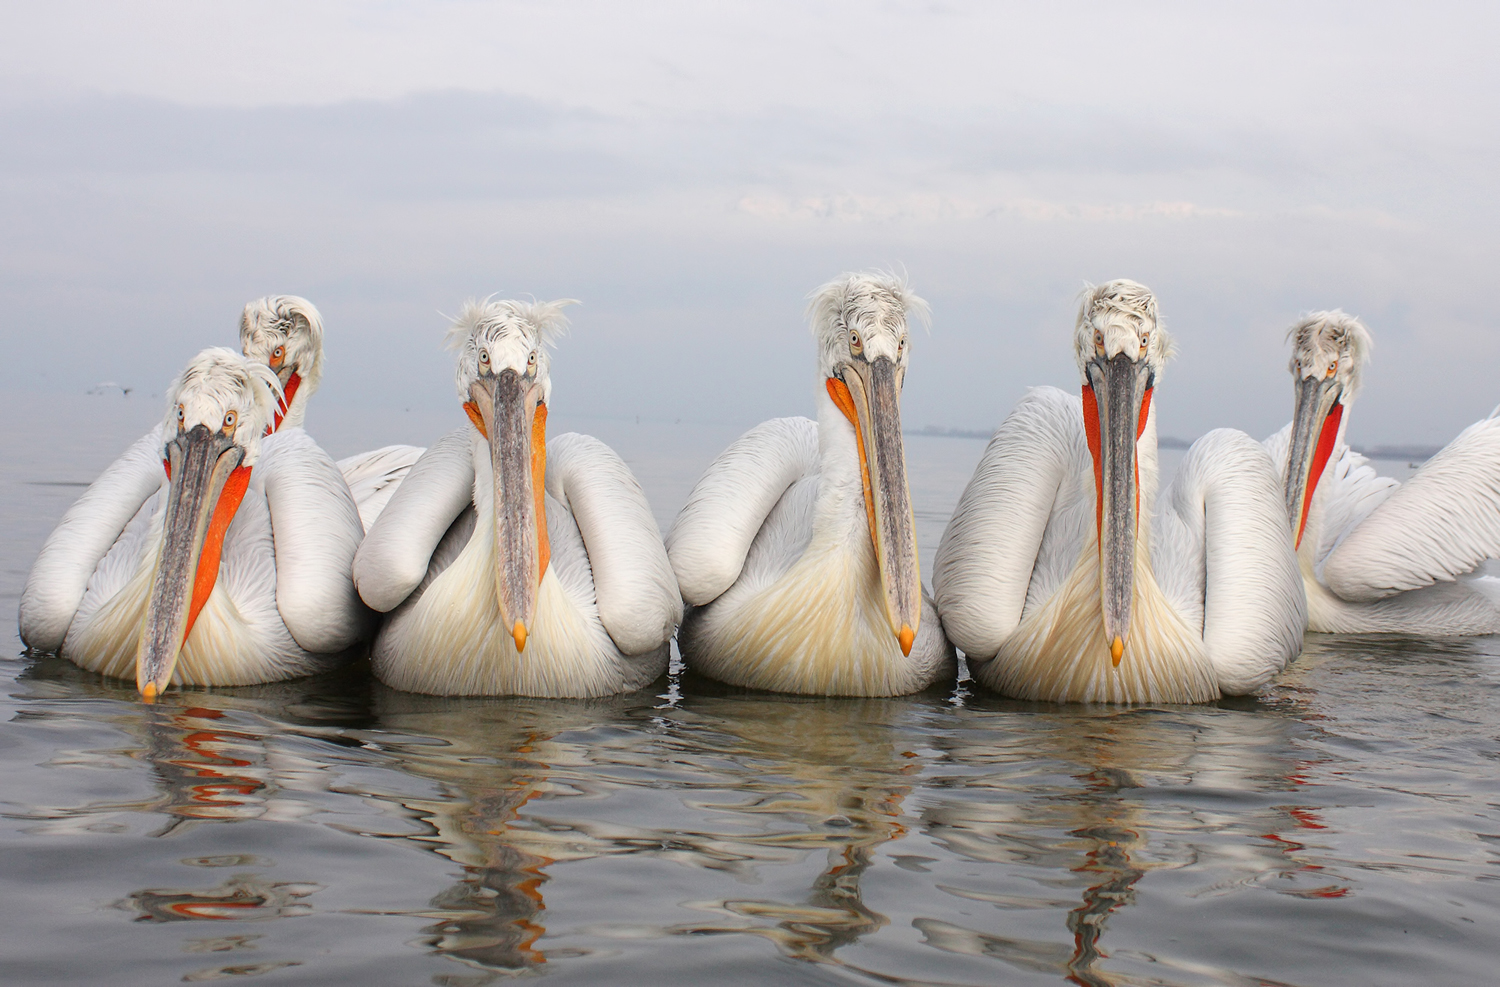 Dalmatian Pelicans by Mladen Vasilev_home page_1500pix